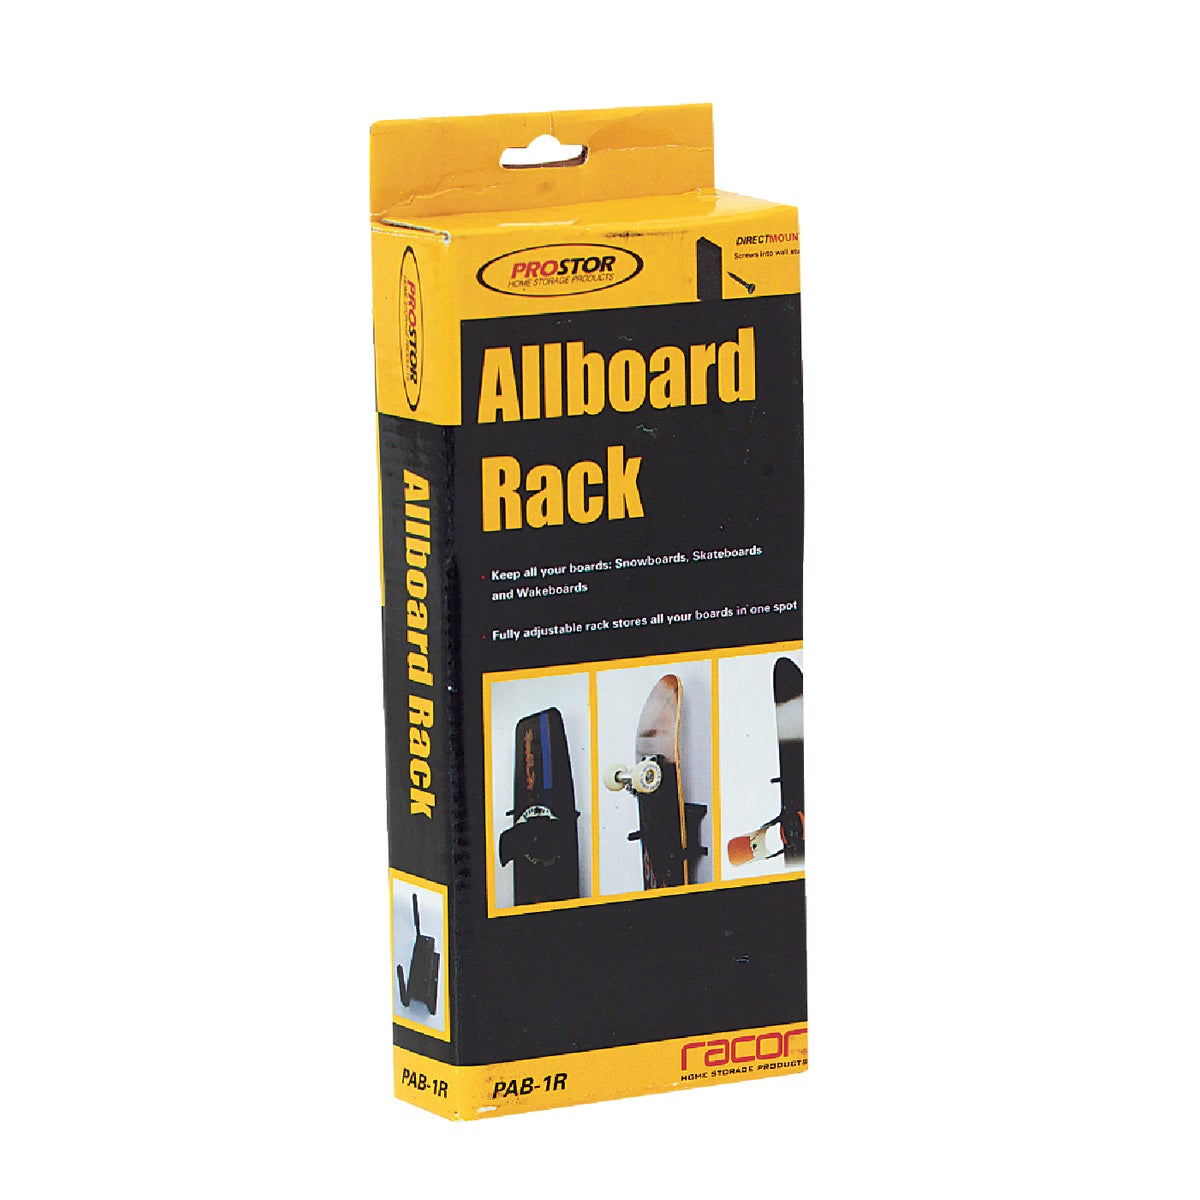 ALL BOARD RACK - PAB1R by Racor Inc